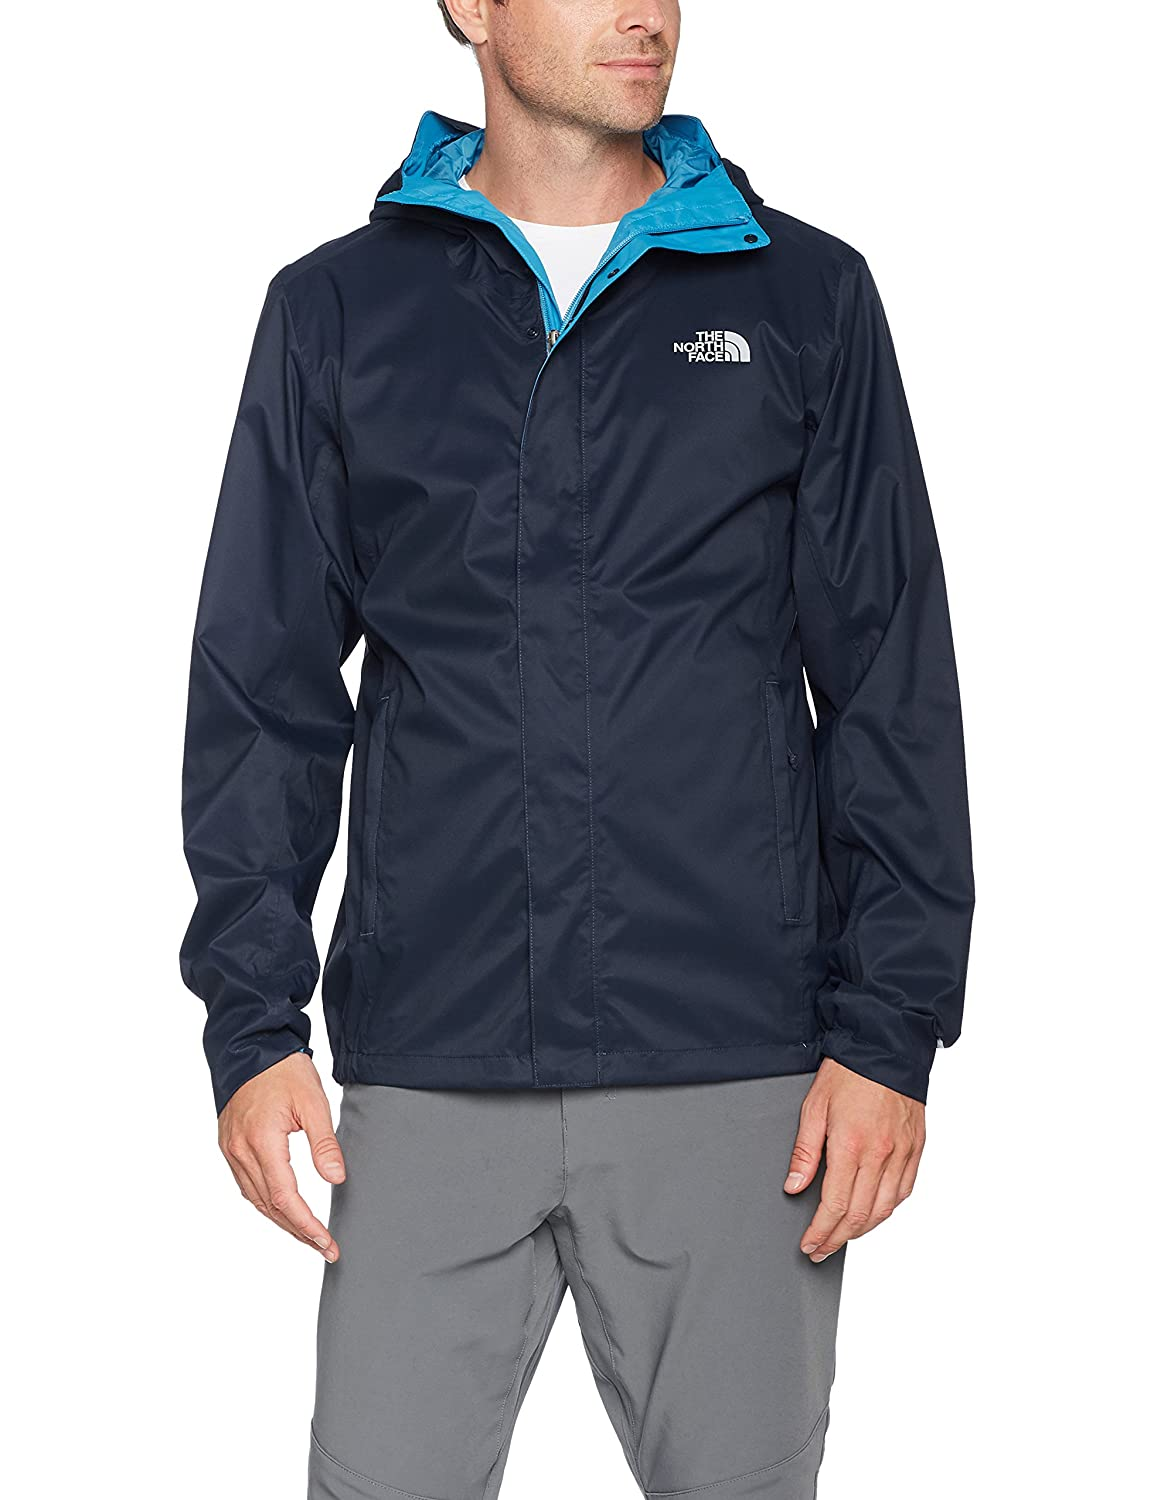 TALLA L. The North Face tanken – Chaqueta Hombre